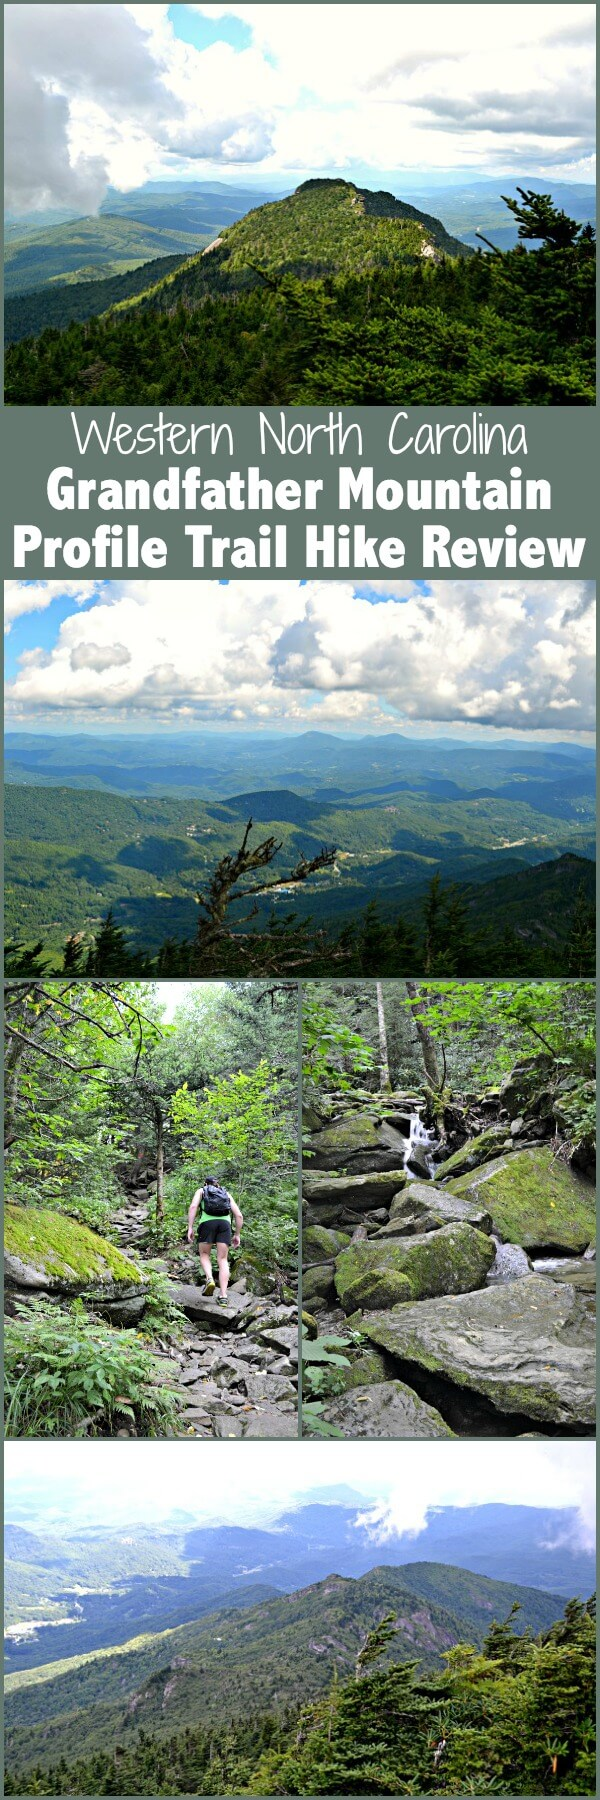 A review of the Profile Trail hike to Calloway Peak on Grandfather Mountain in the Western North Carolina mountains.